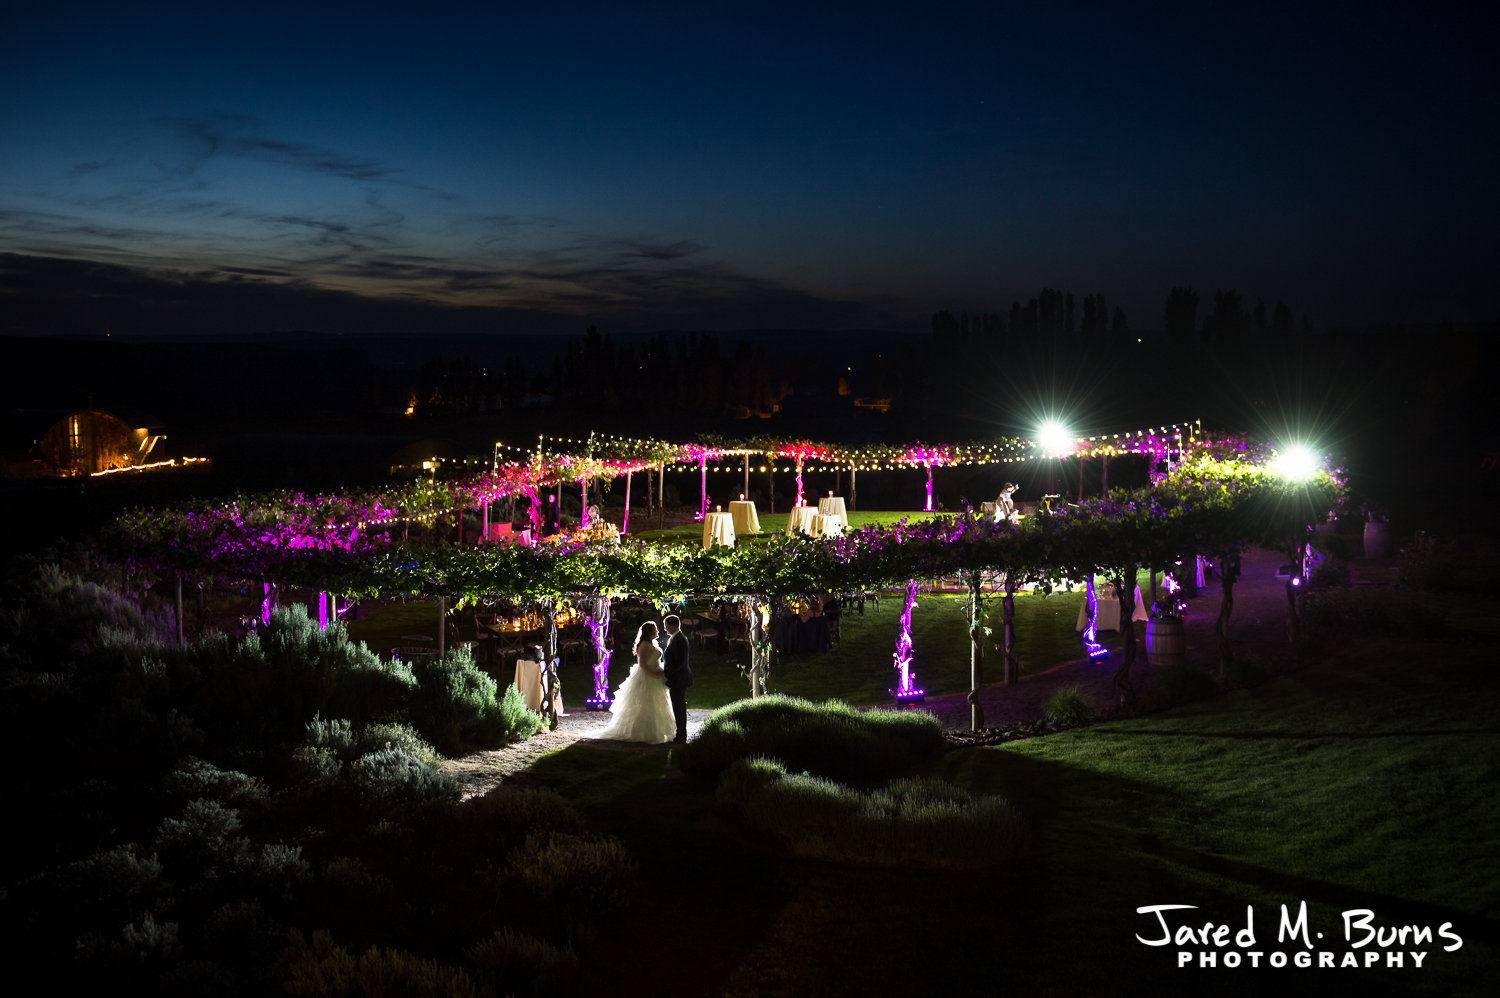 Seattle Wedding Photographer-Jared M. Burns - Cave B Winery at night.jpg